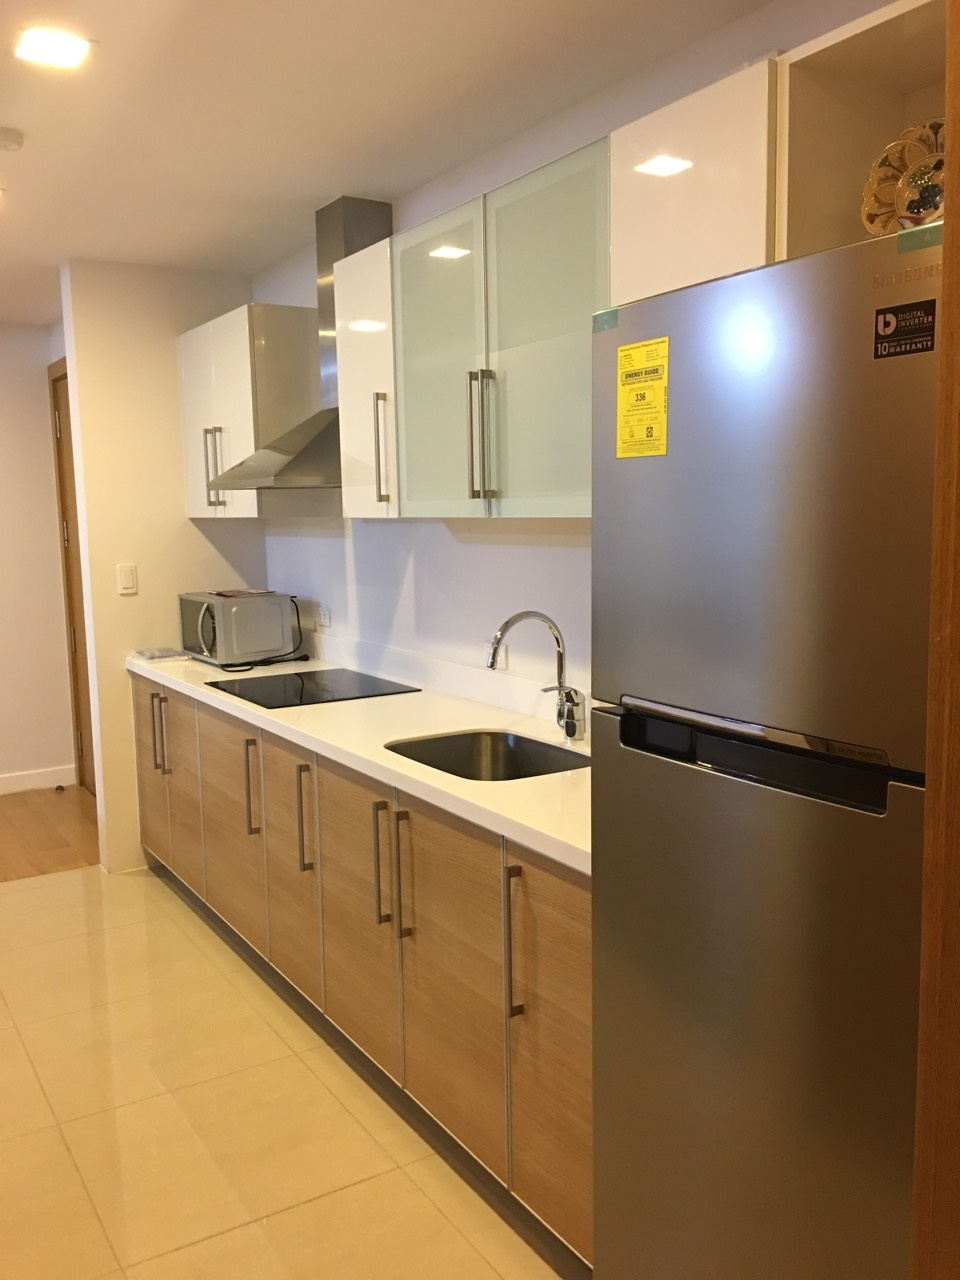 1BR Condo For Rent, Park Terraces Kitchen 2